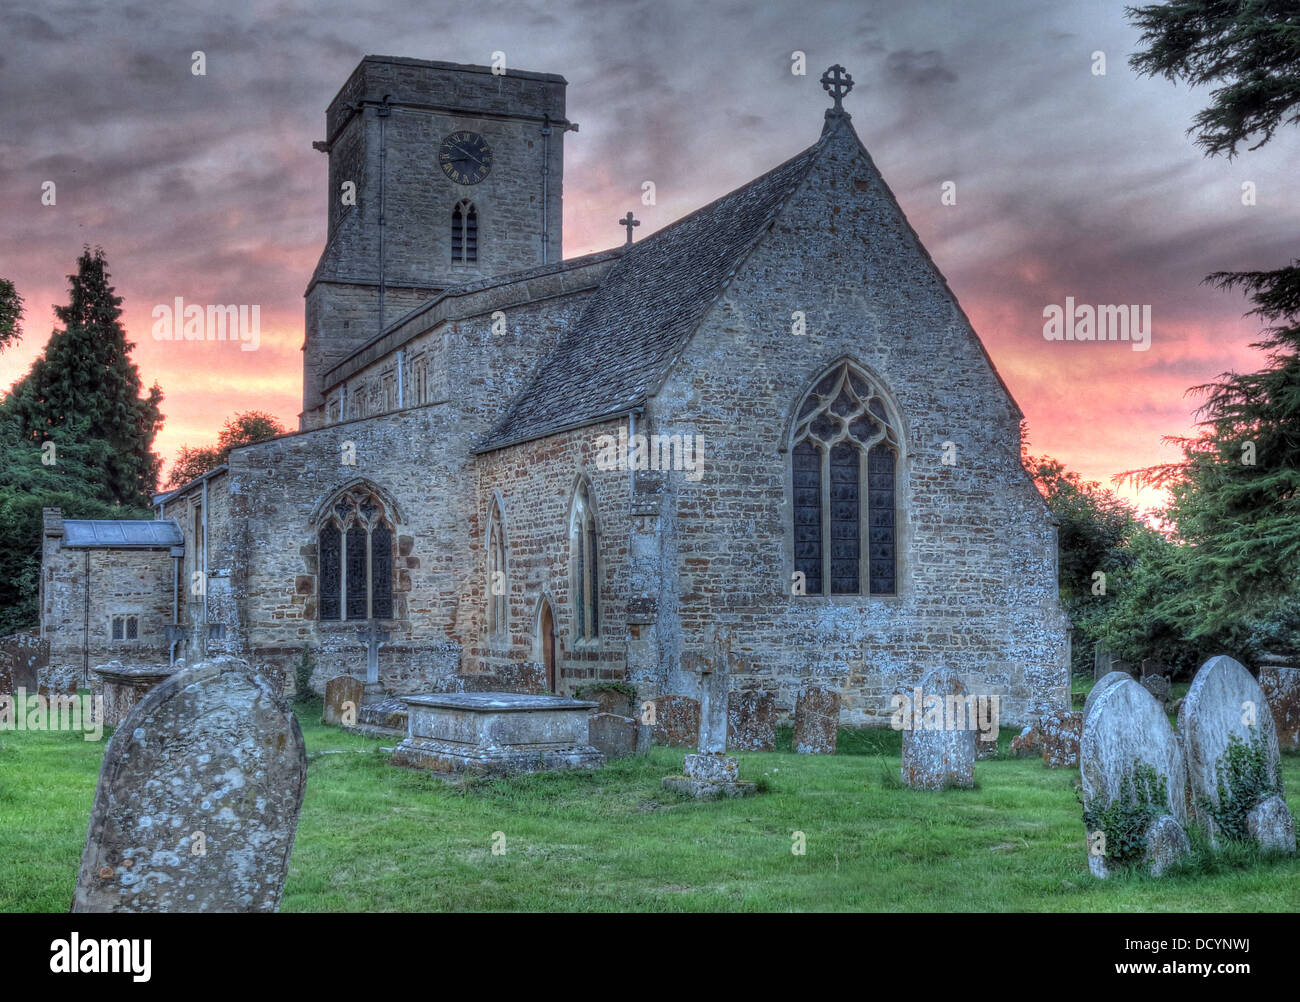 St Mary Church, Lower Heyford at sunset, Oxfordshire, England, UK - Stock Image